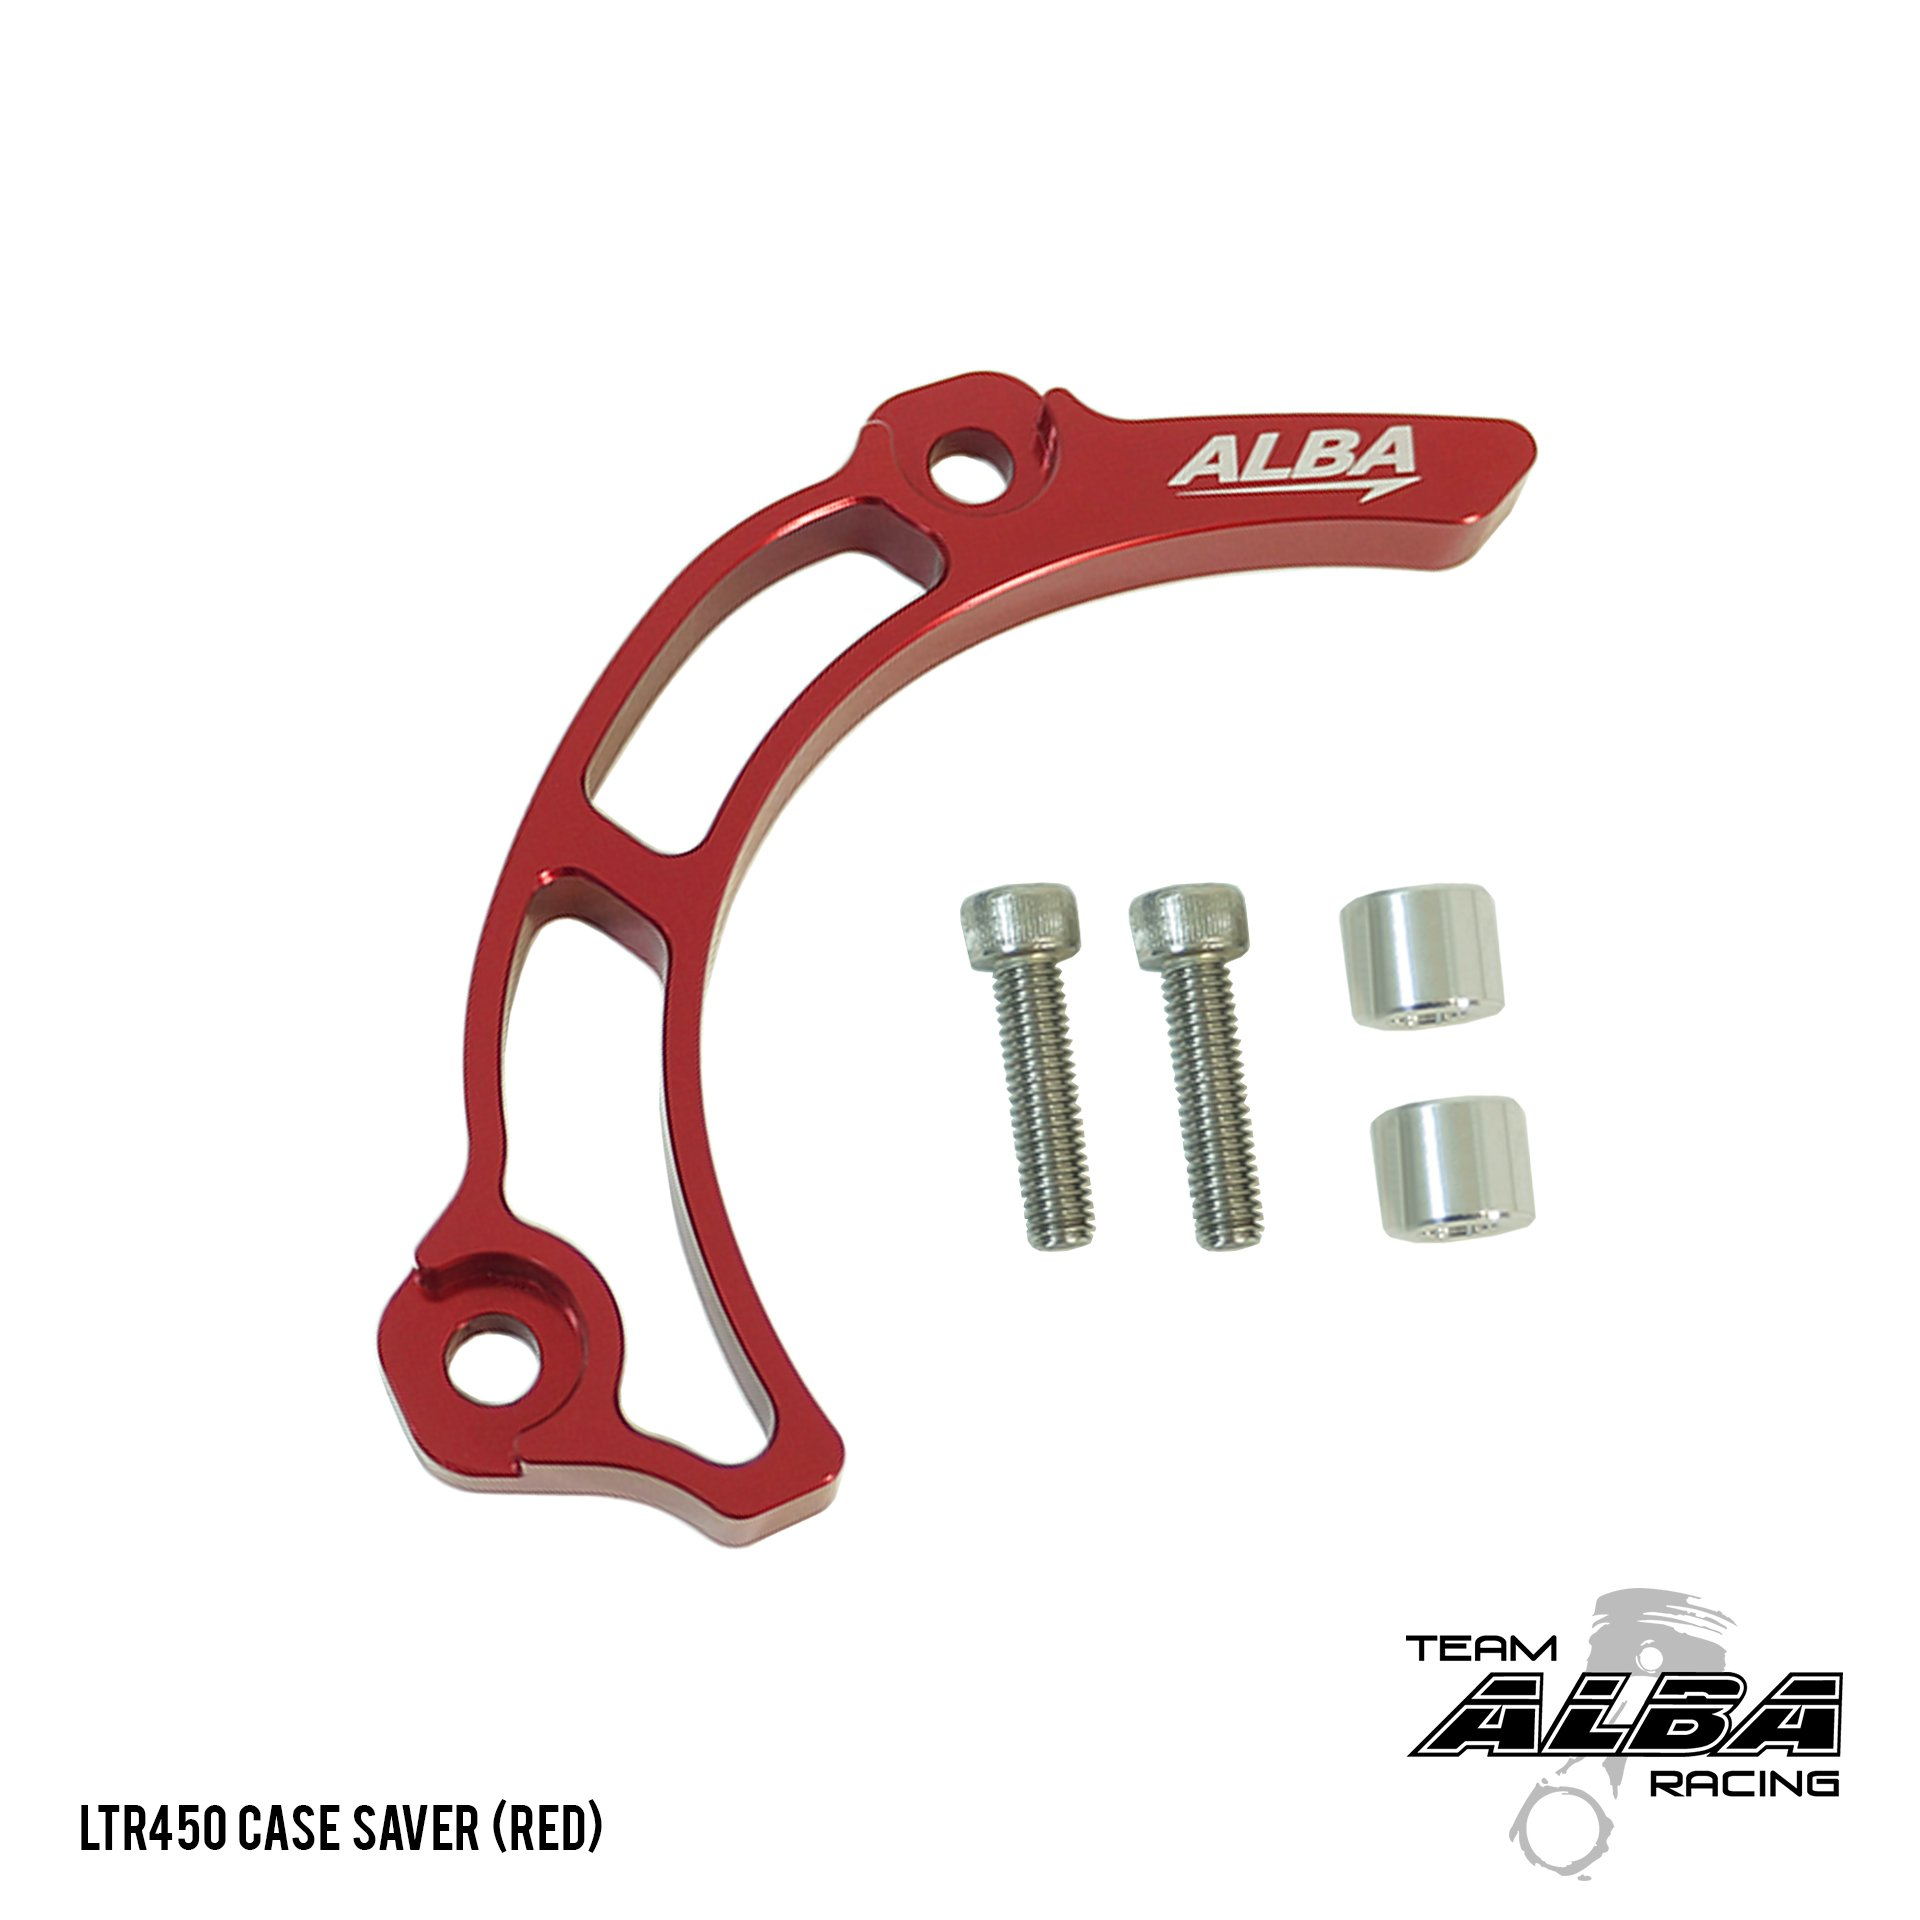 Suzuki LTR 450 Case Saver Red ( 2006-2009)